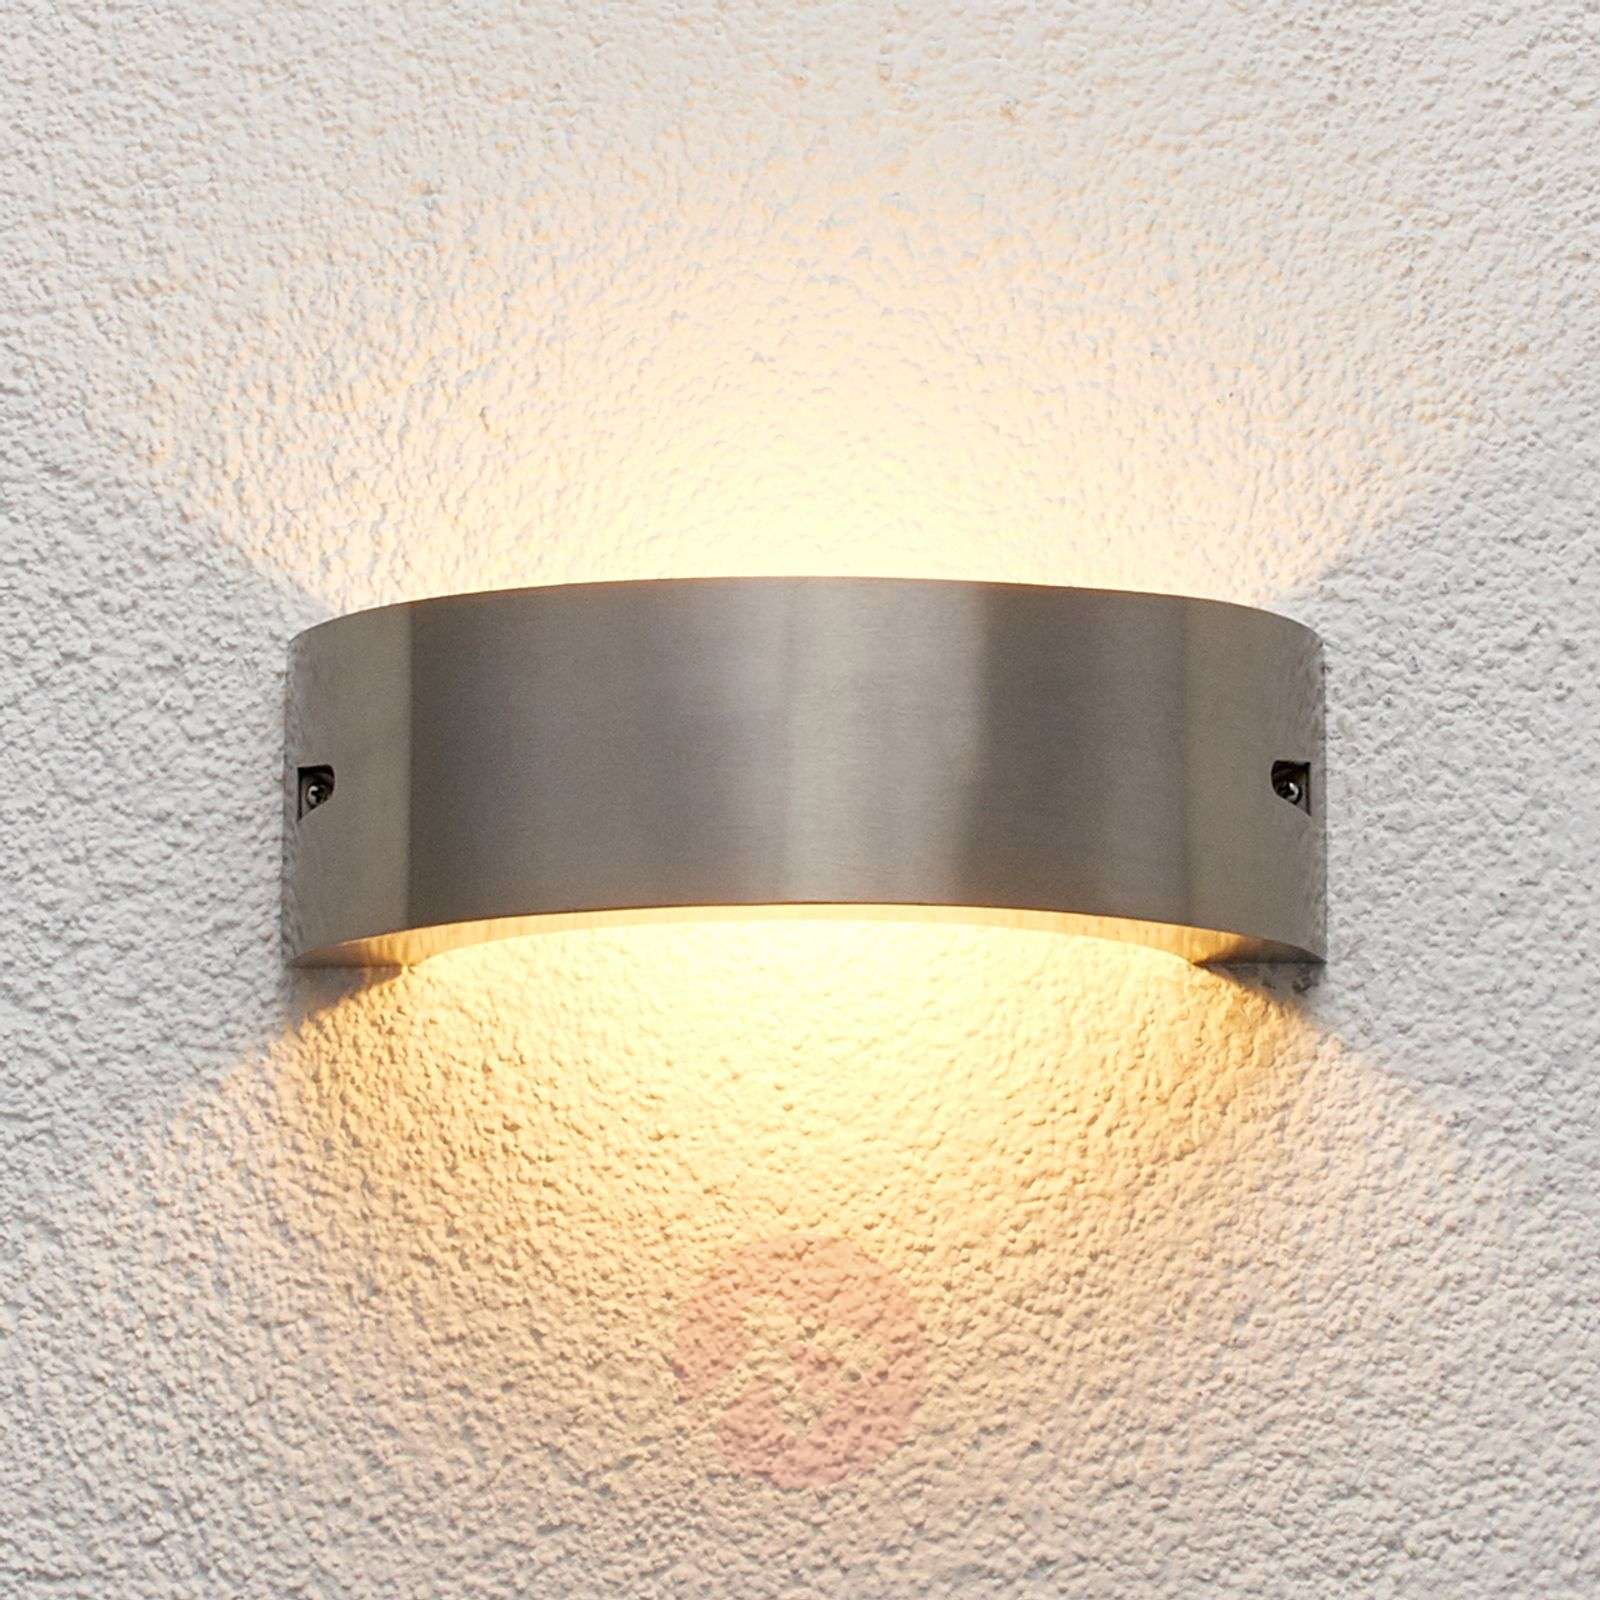 Stainless steel LED outdoor wall light Marisa | Lights.ie